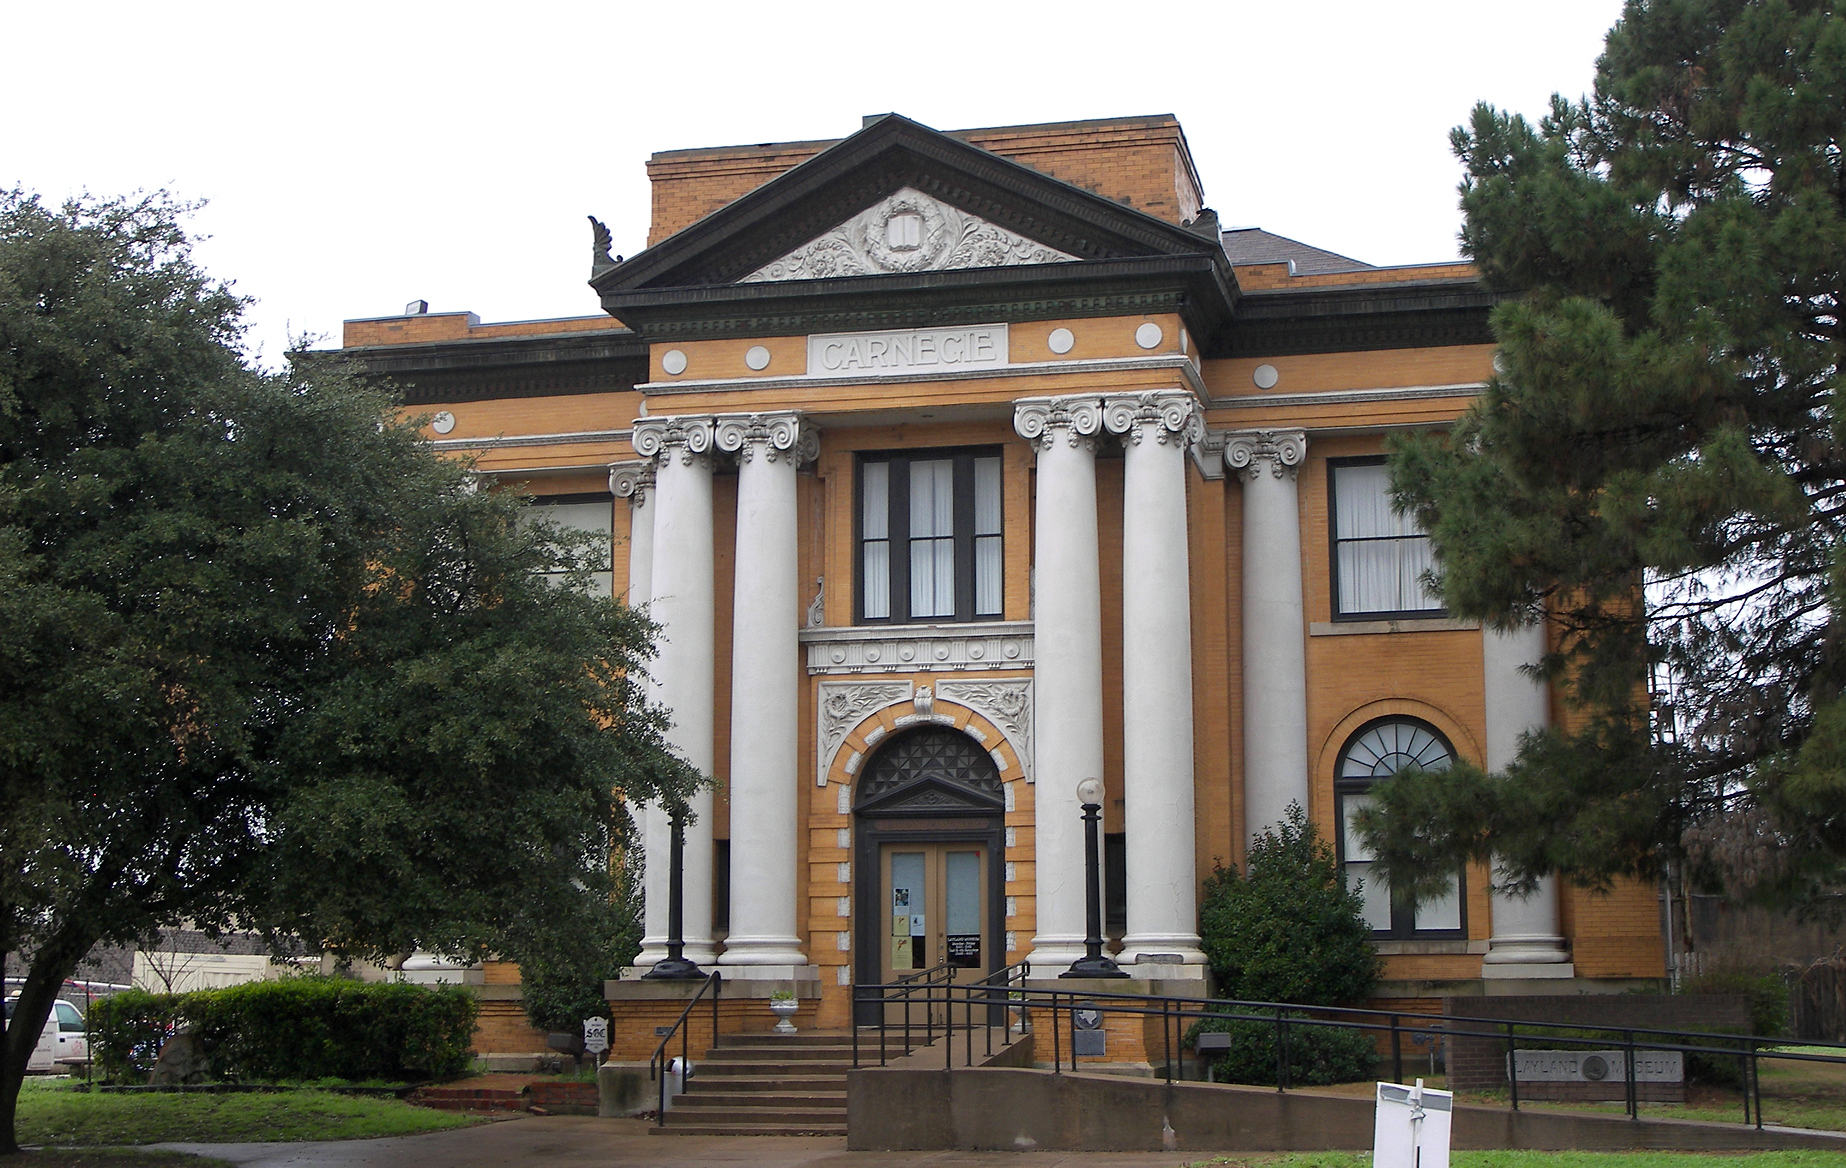 Cleburne (TX) United States  City pictures : Carnegie library cleburne 2010 Wikimedia Commons